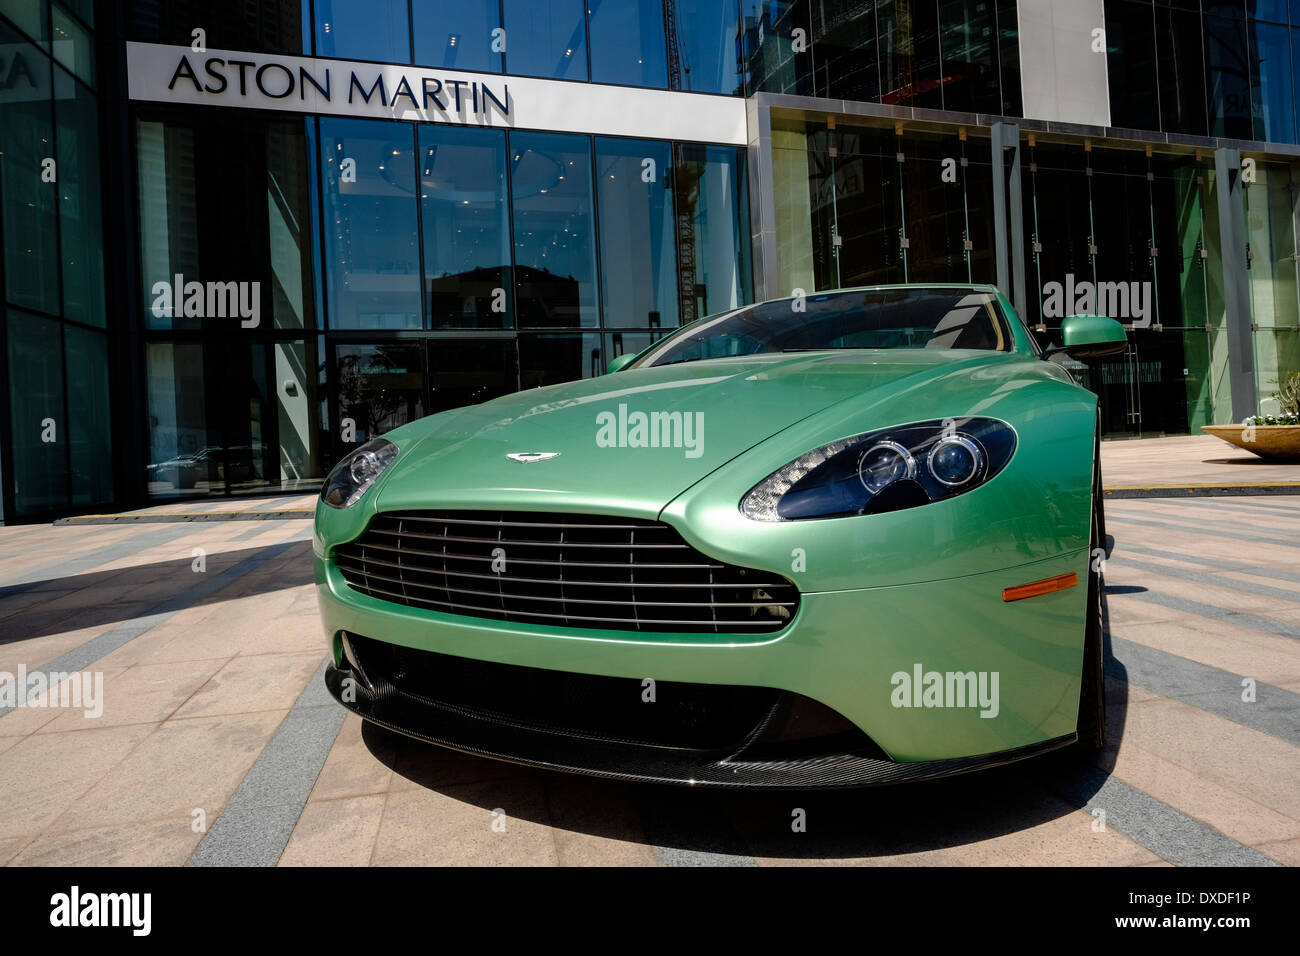 Showroom von Aston Martin Luxusautos in Dubai Vereinigte Arabische Emirate Stockbild